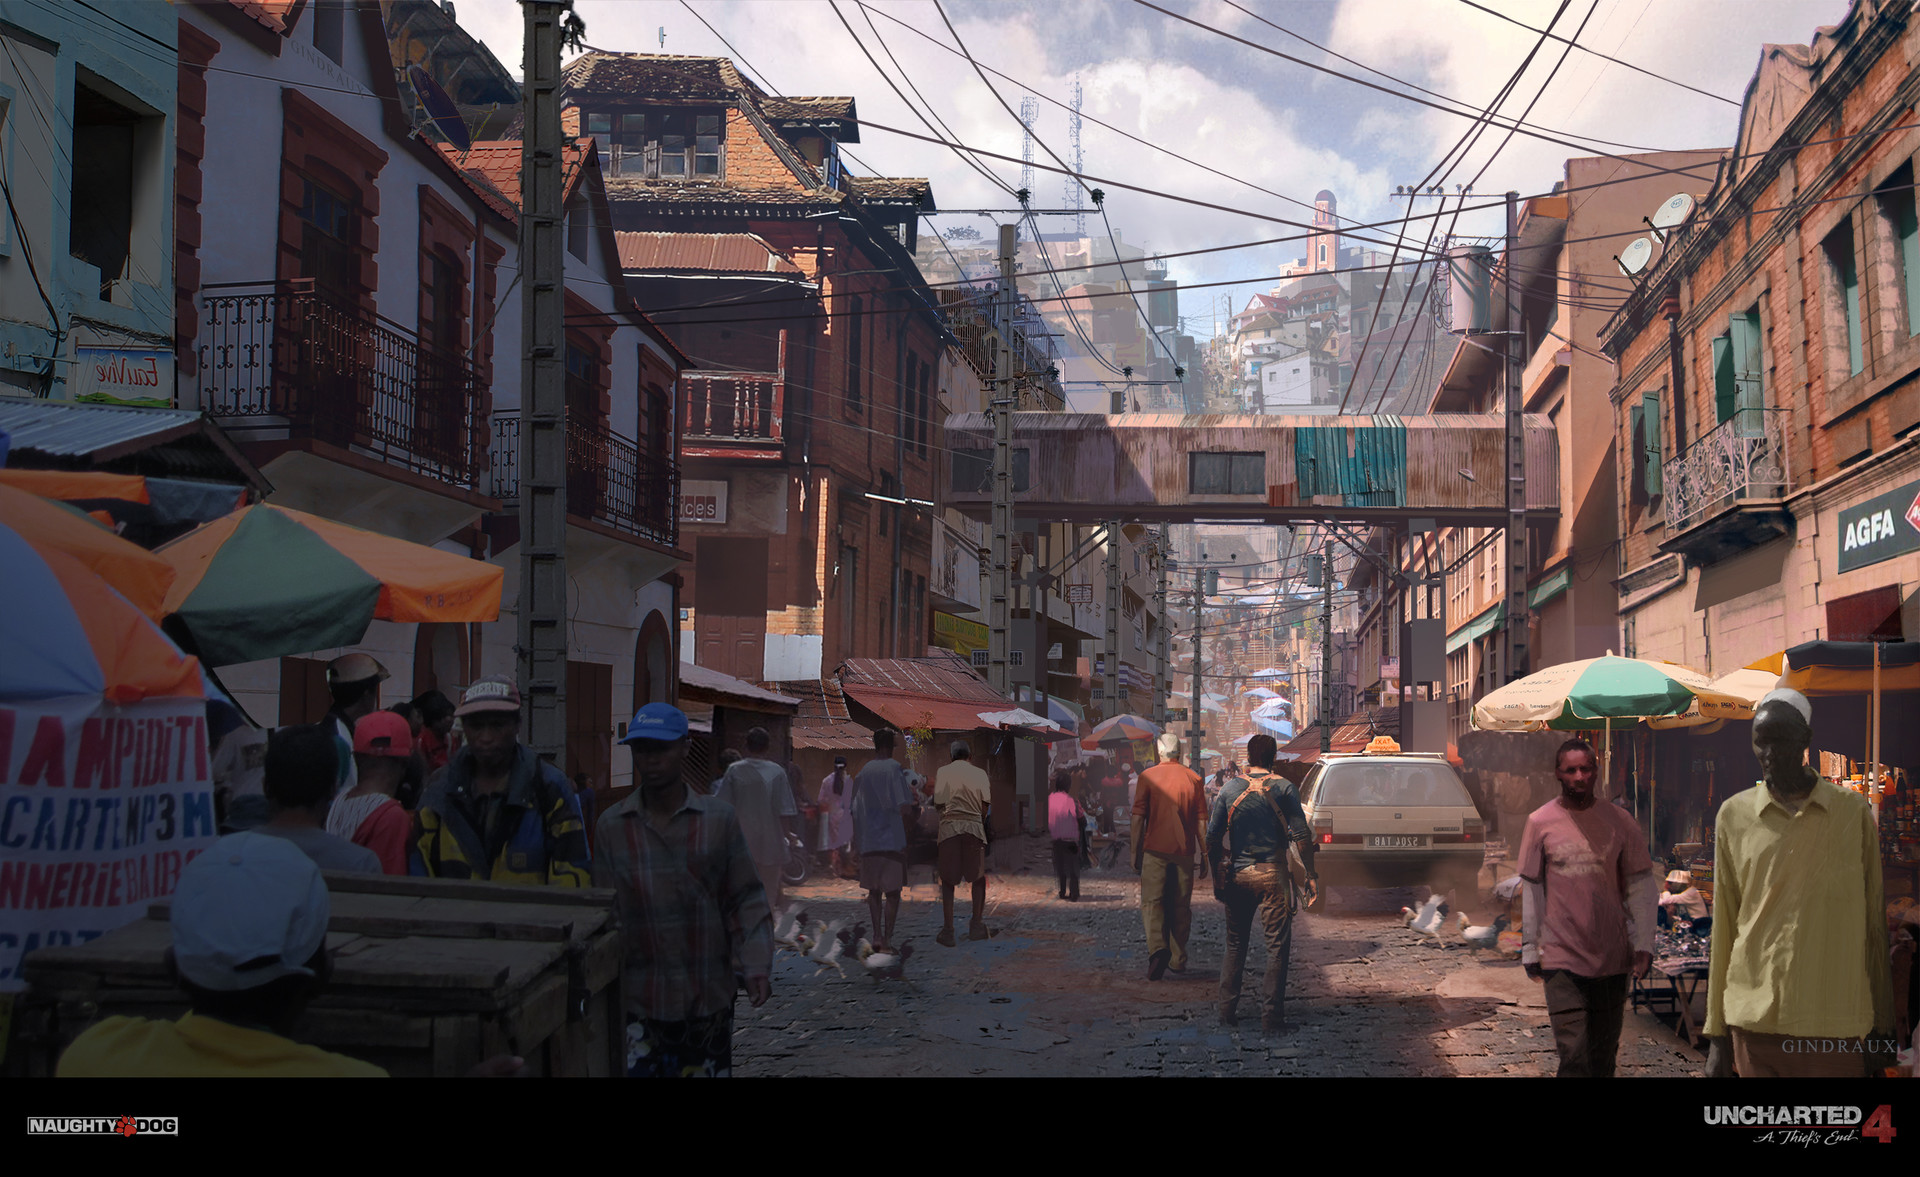 Nick Gindraux Digital Painting Concept art Uncharted 4 Antananarivo